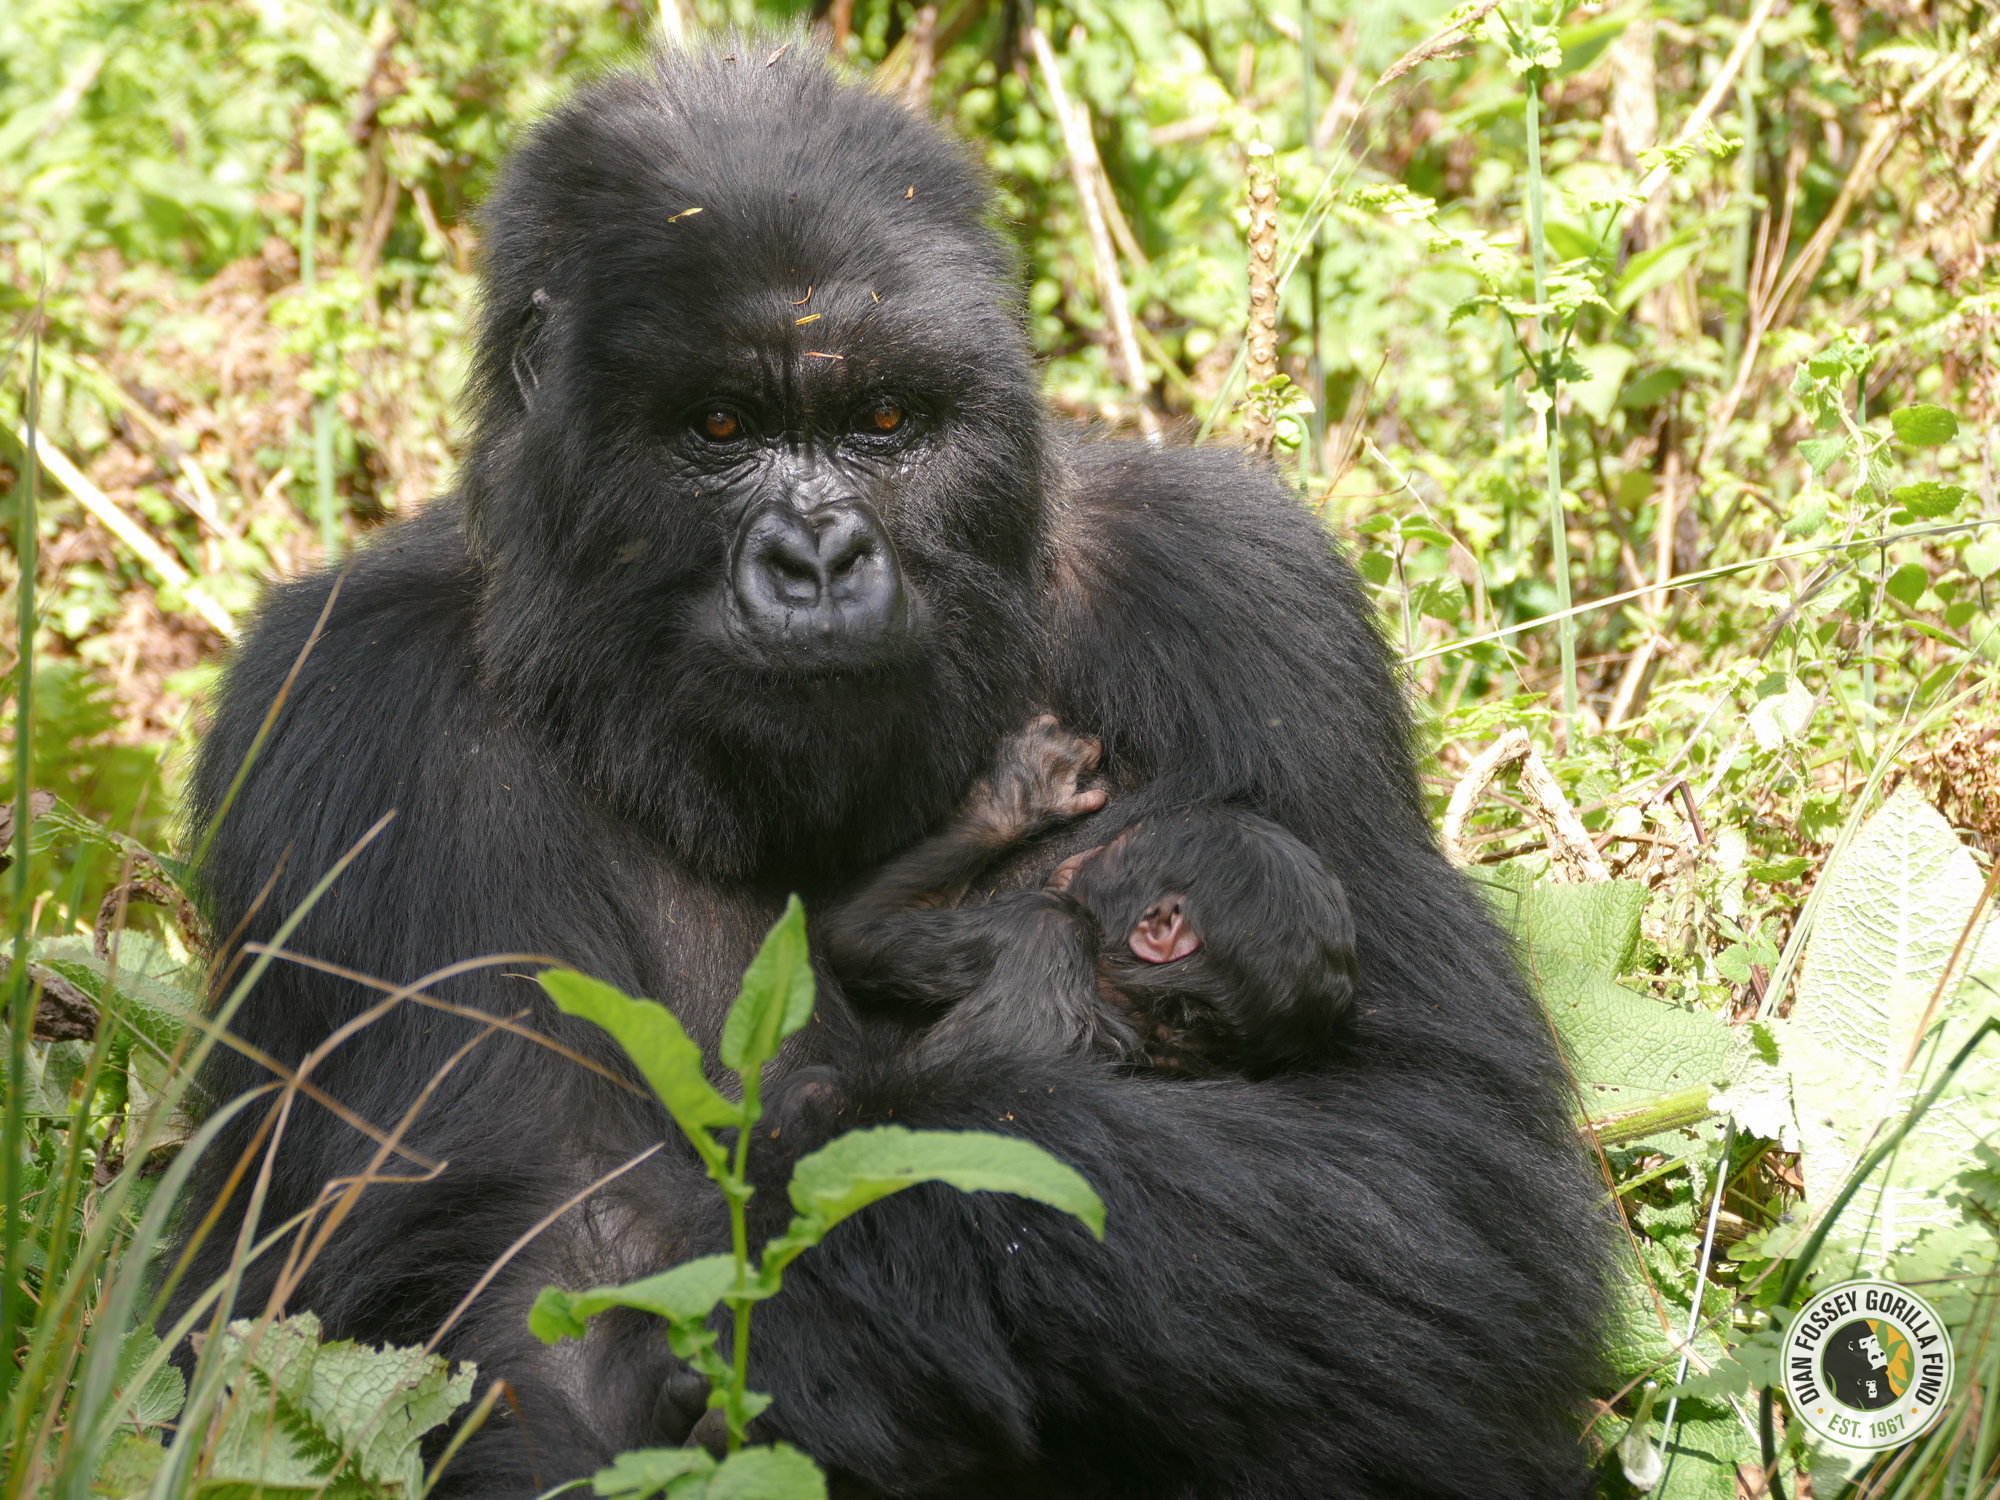 Mom Ishyaka and new baby (c) Dian Fossey Gorilla Fund